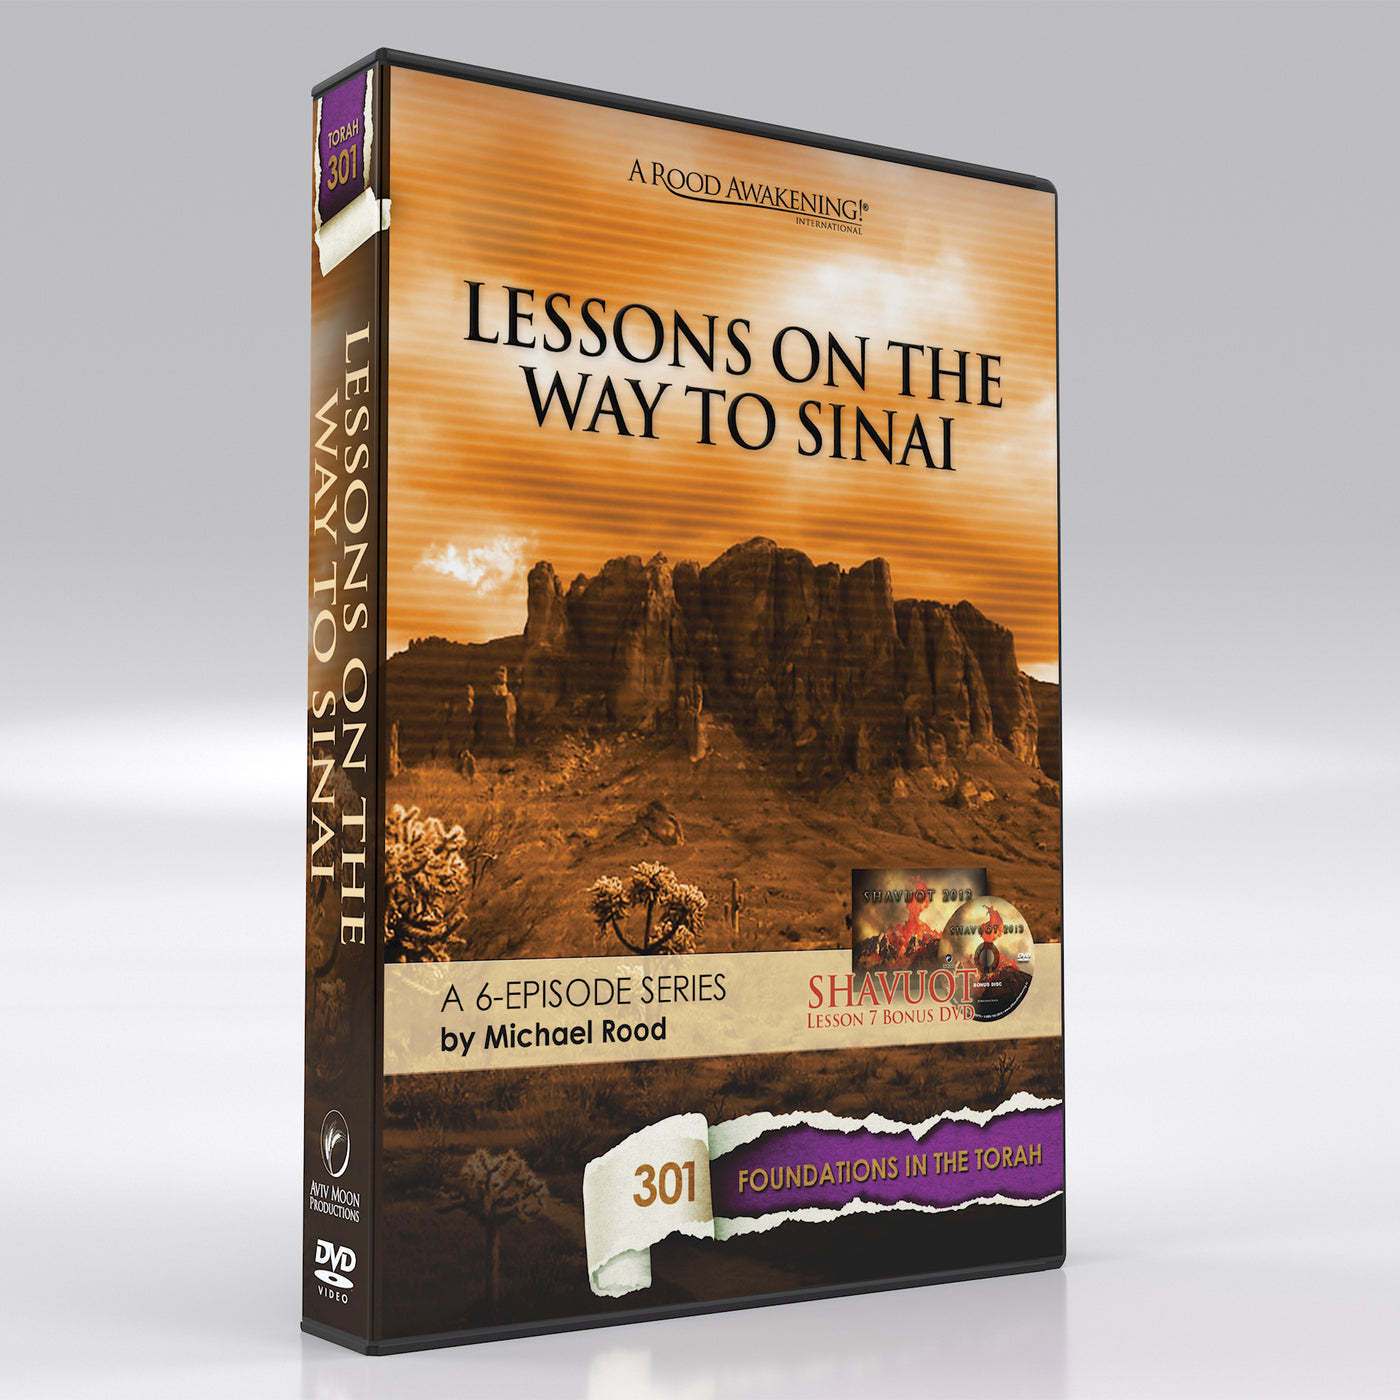 Lessons on the Way to Sinai